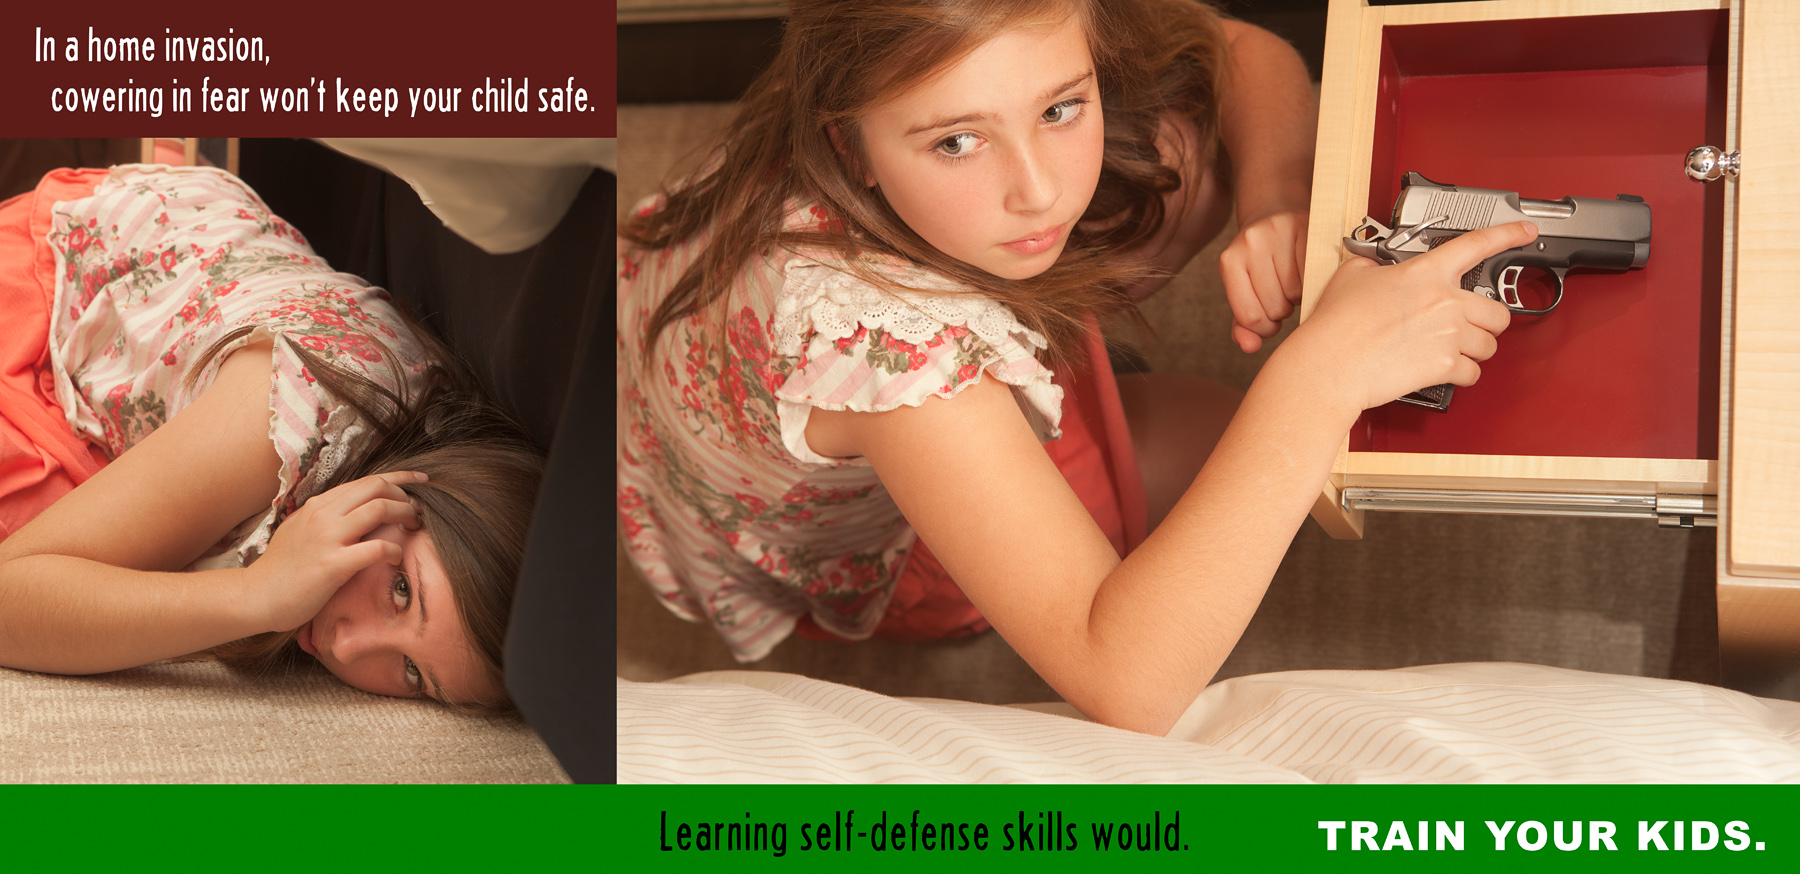 Children defend themselves with firearms more often than many realize.